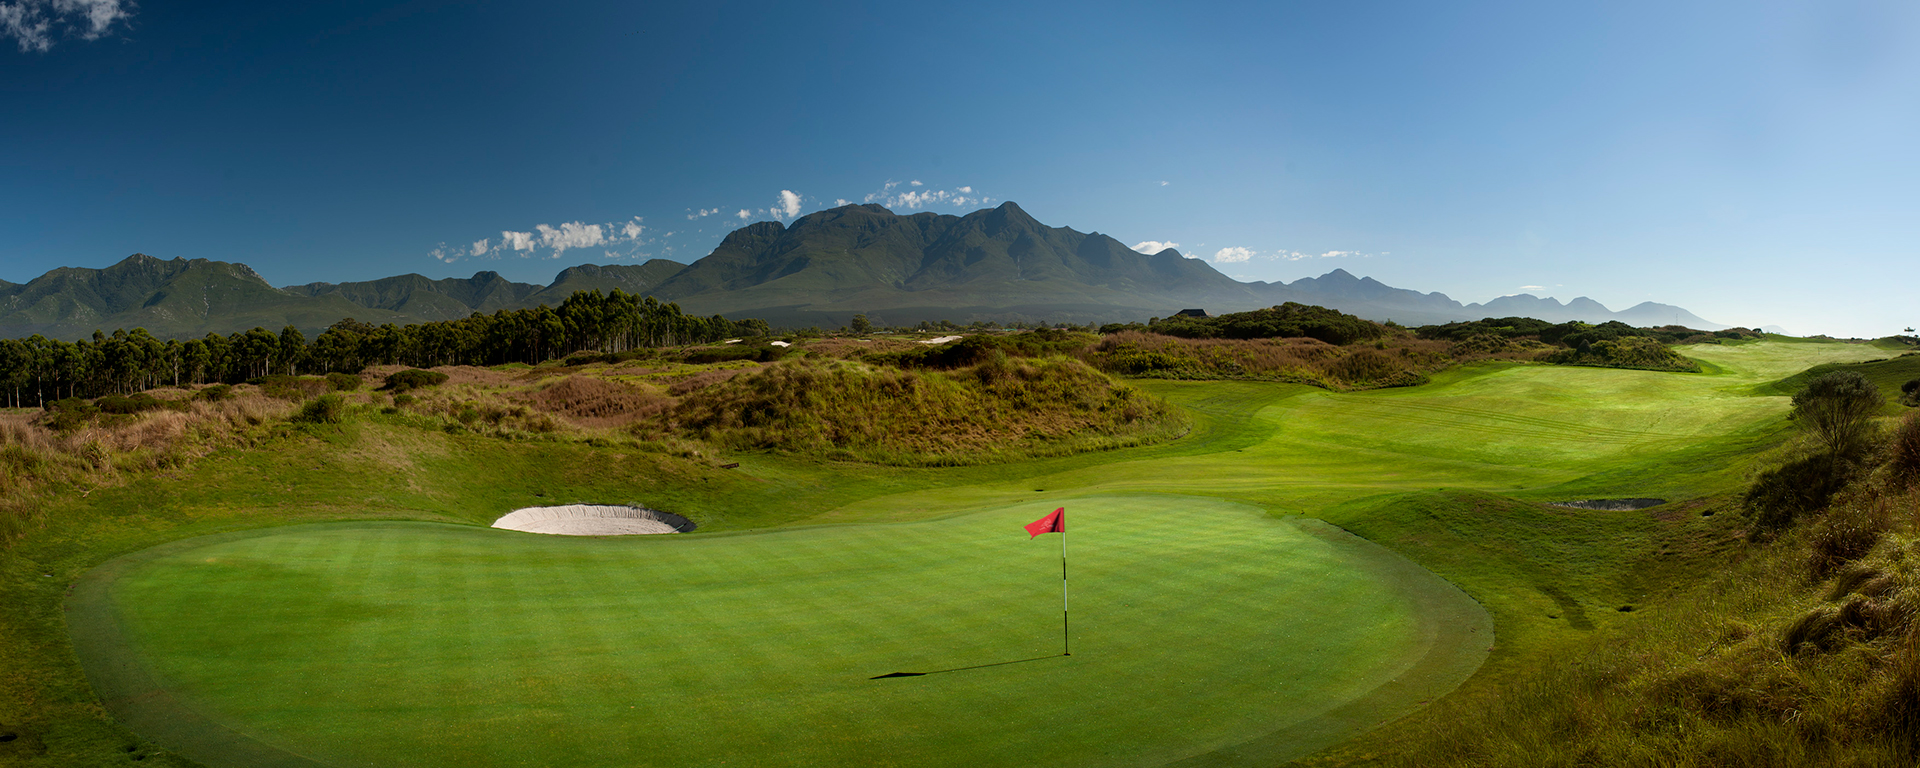 Fancourt's famous Links course is world-renowned for its technical difficulty and spectacular scenery of the George mountains.